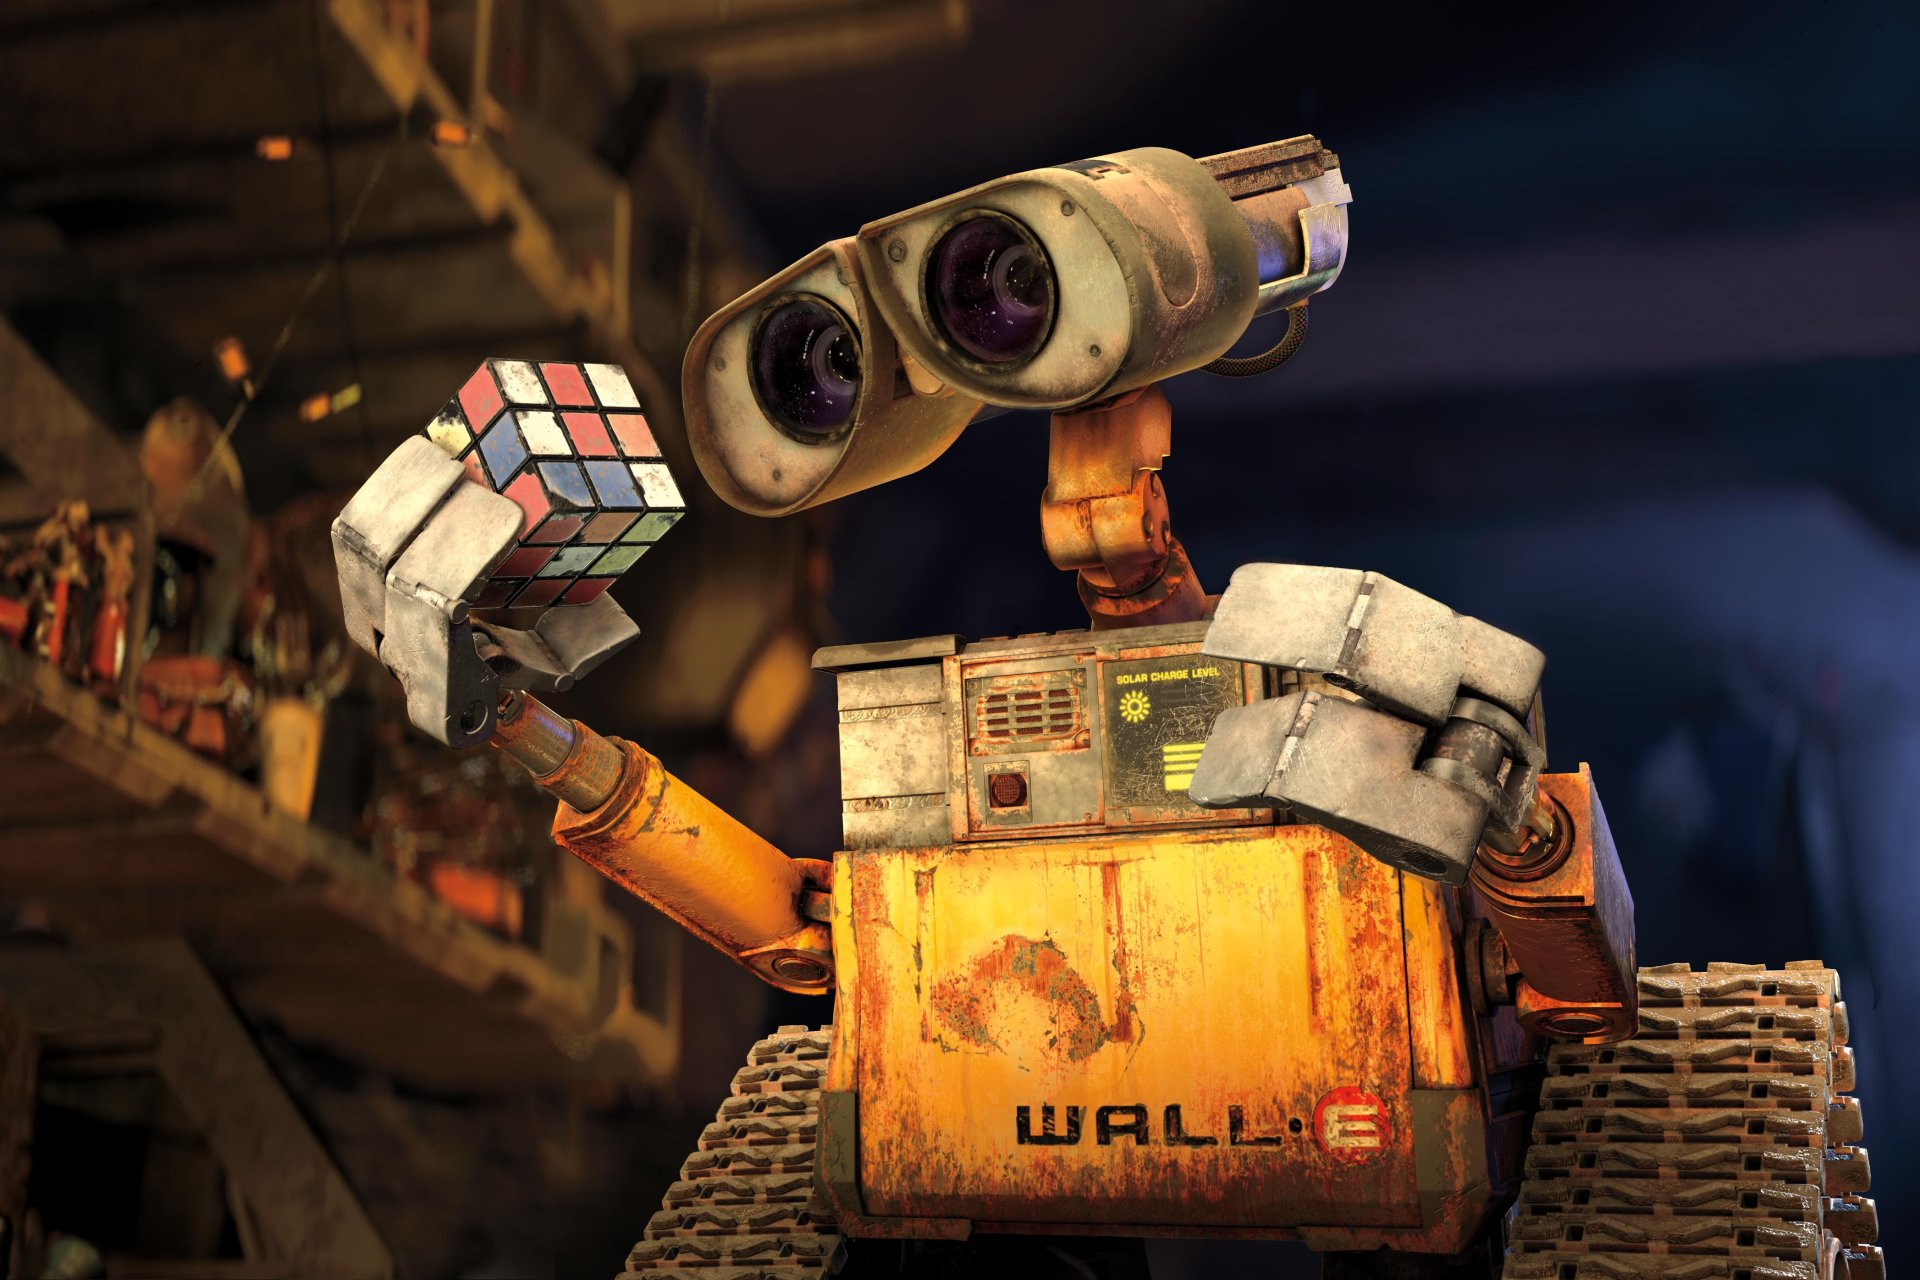 71 Wall E Hd Wallpapers Background Images Wallpaper Abyss